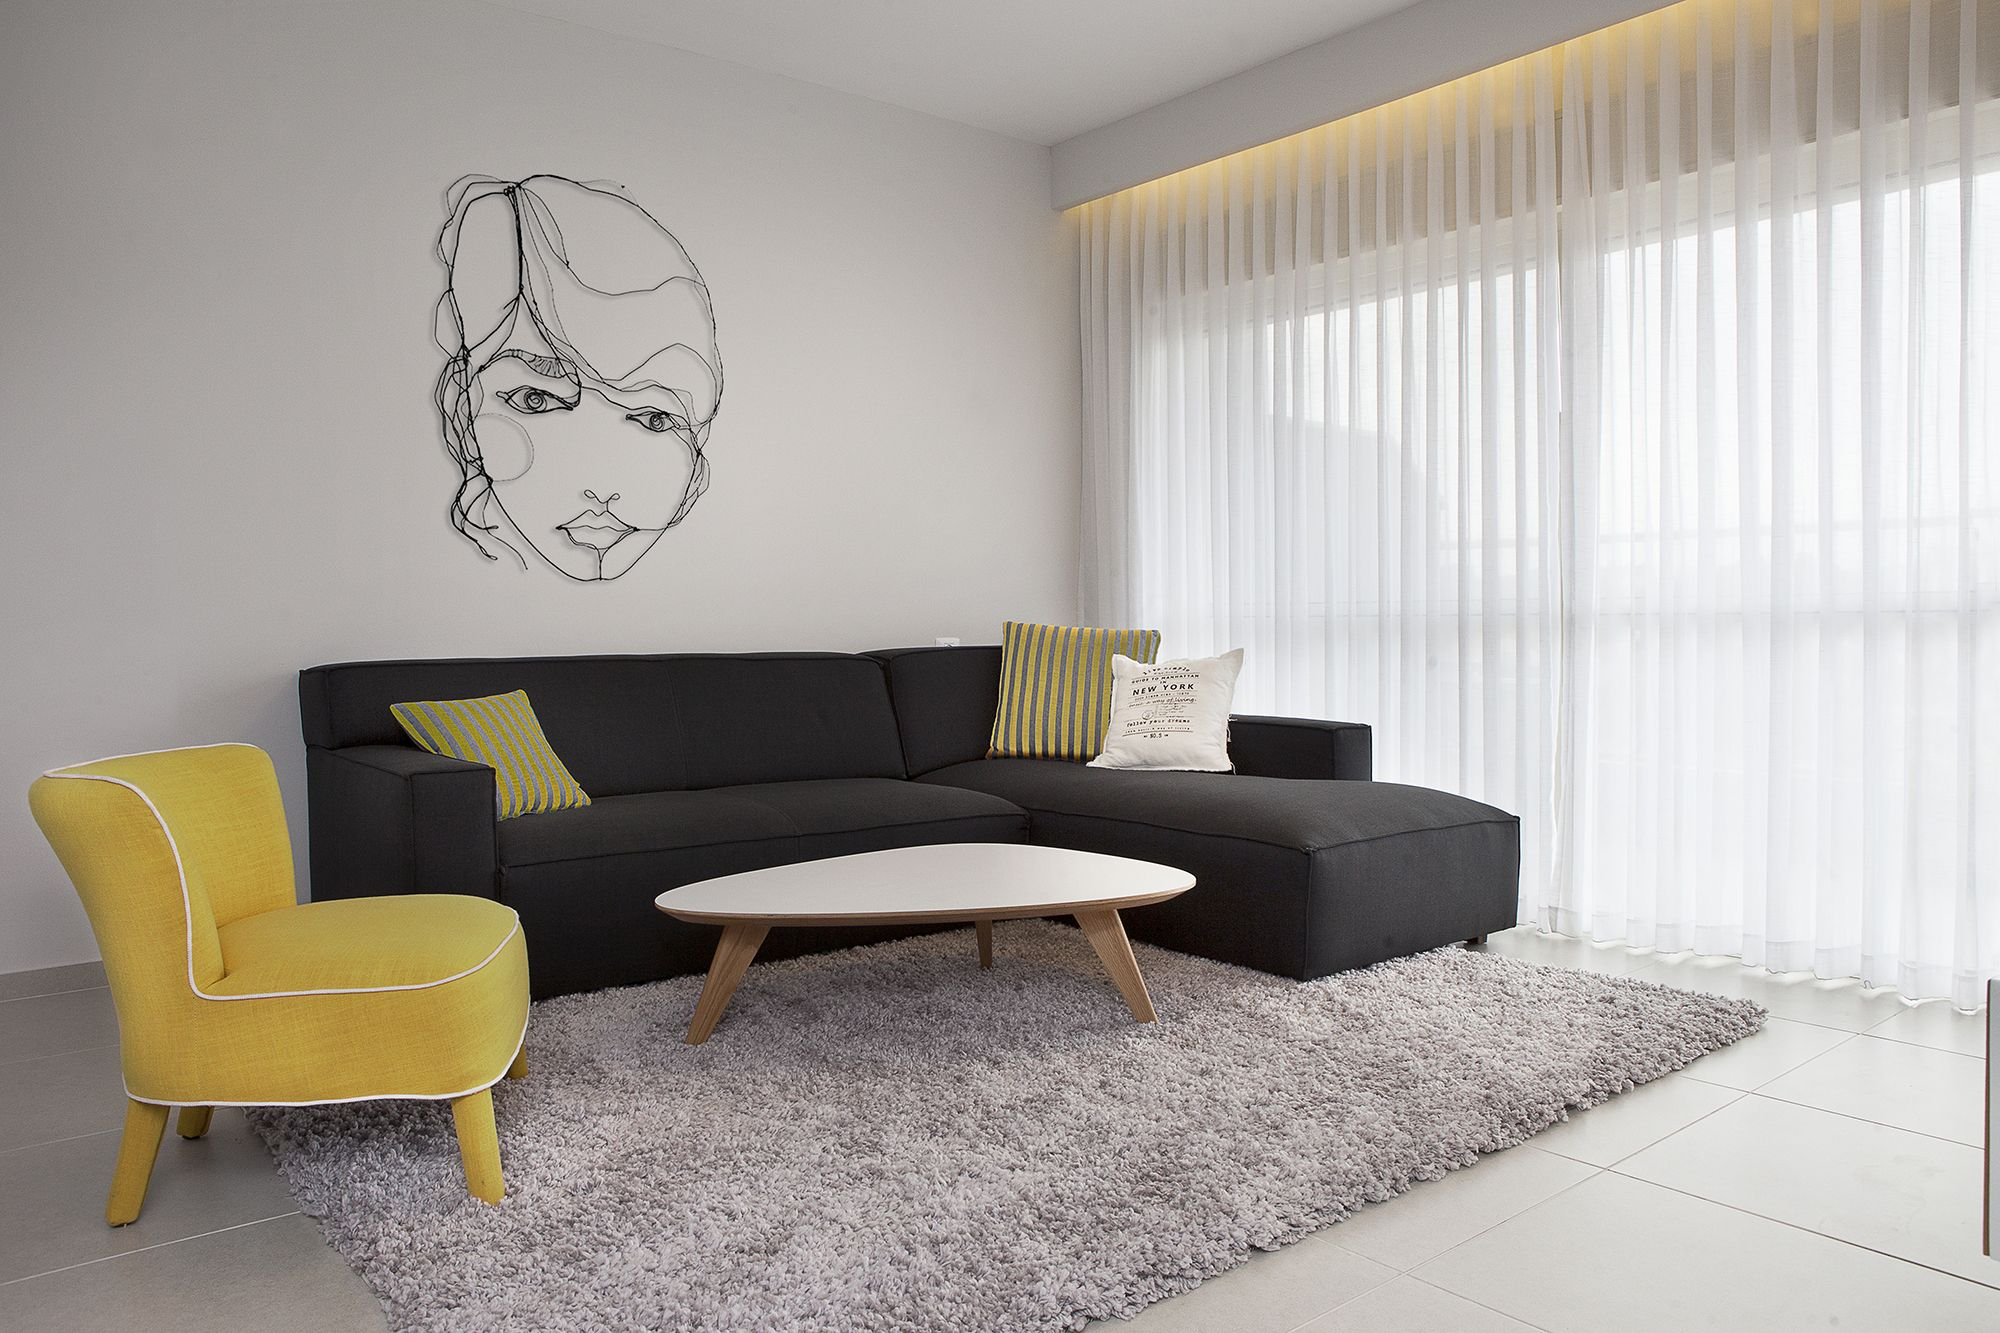 Modern Living Room With Gray Sofa And Yellow Armchair Designed By Dana Shaked Interior Decorating Living Room Simple Living Room Designs Minimalist Design Sofa